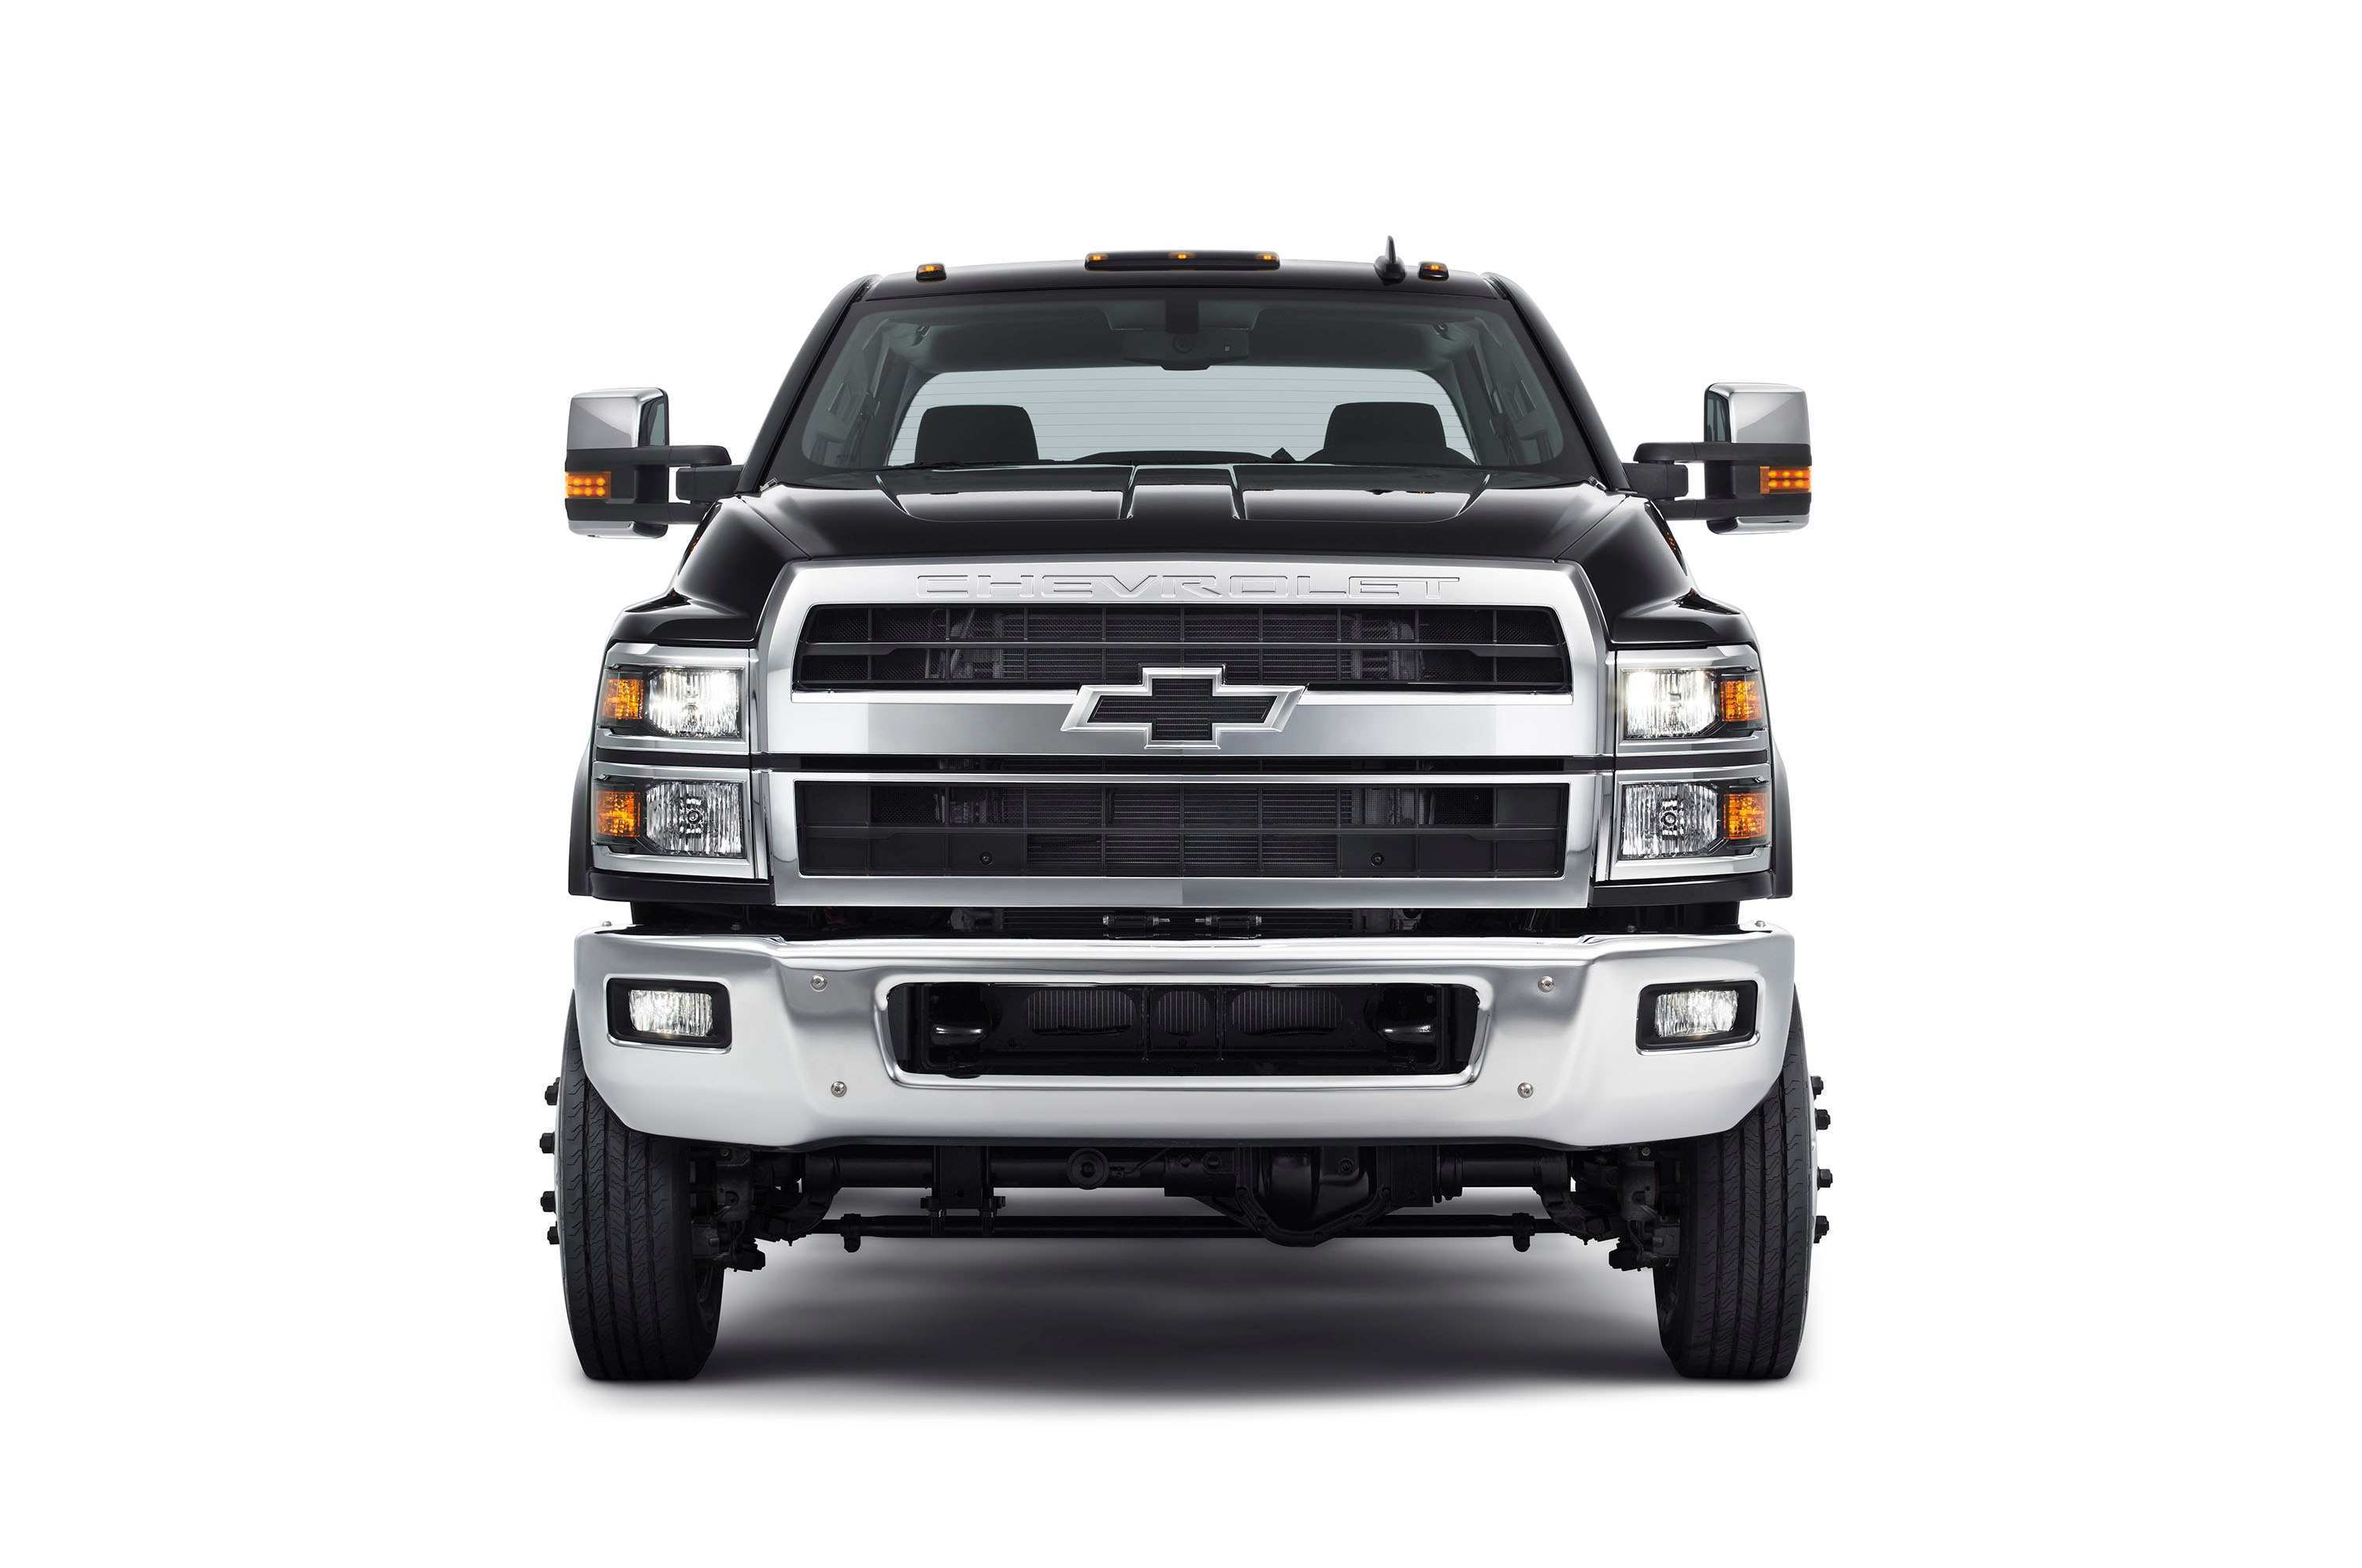 71 Concept of 2019 Gmc Hd 4500 Redesign and Concept with 2019 Gmc Hd 4500